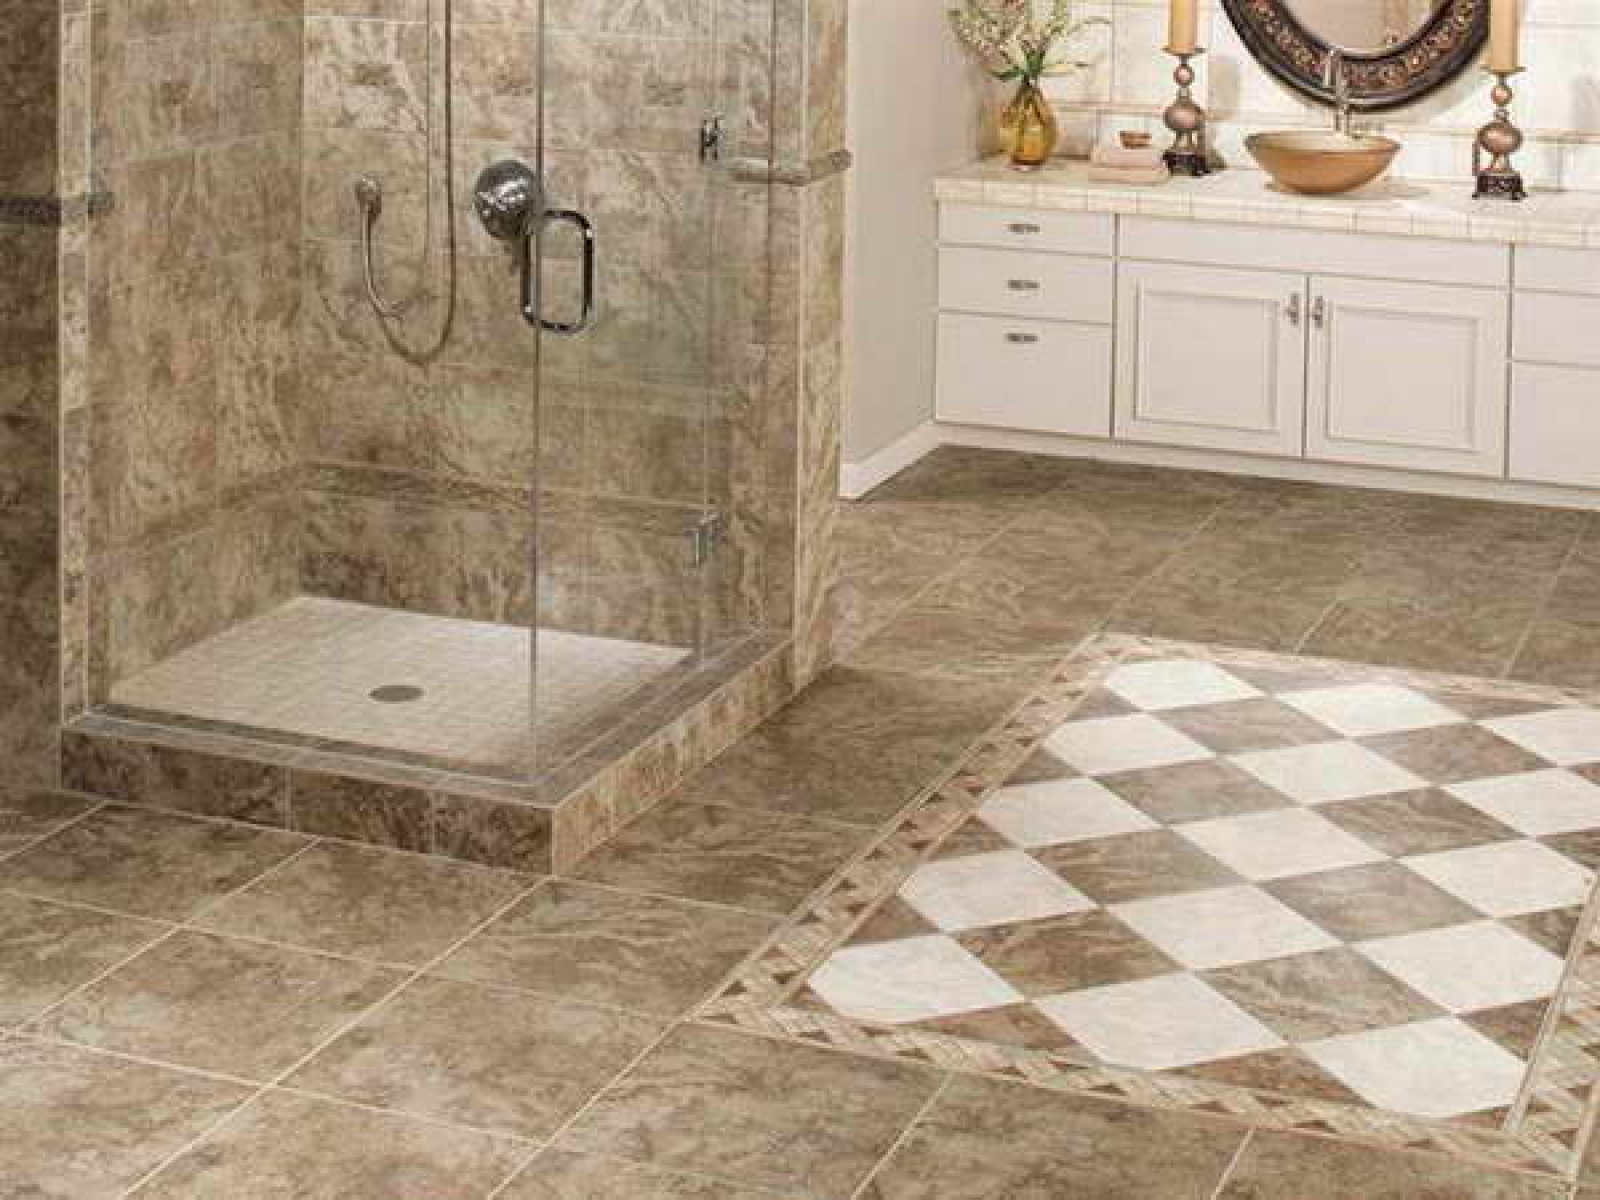 1600x1200-pictures-of-bathroom-tile-floors-with-decorative-candles